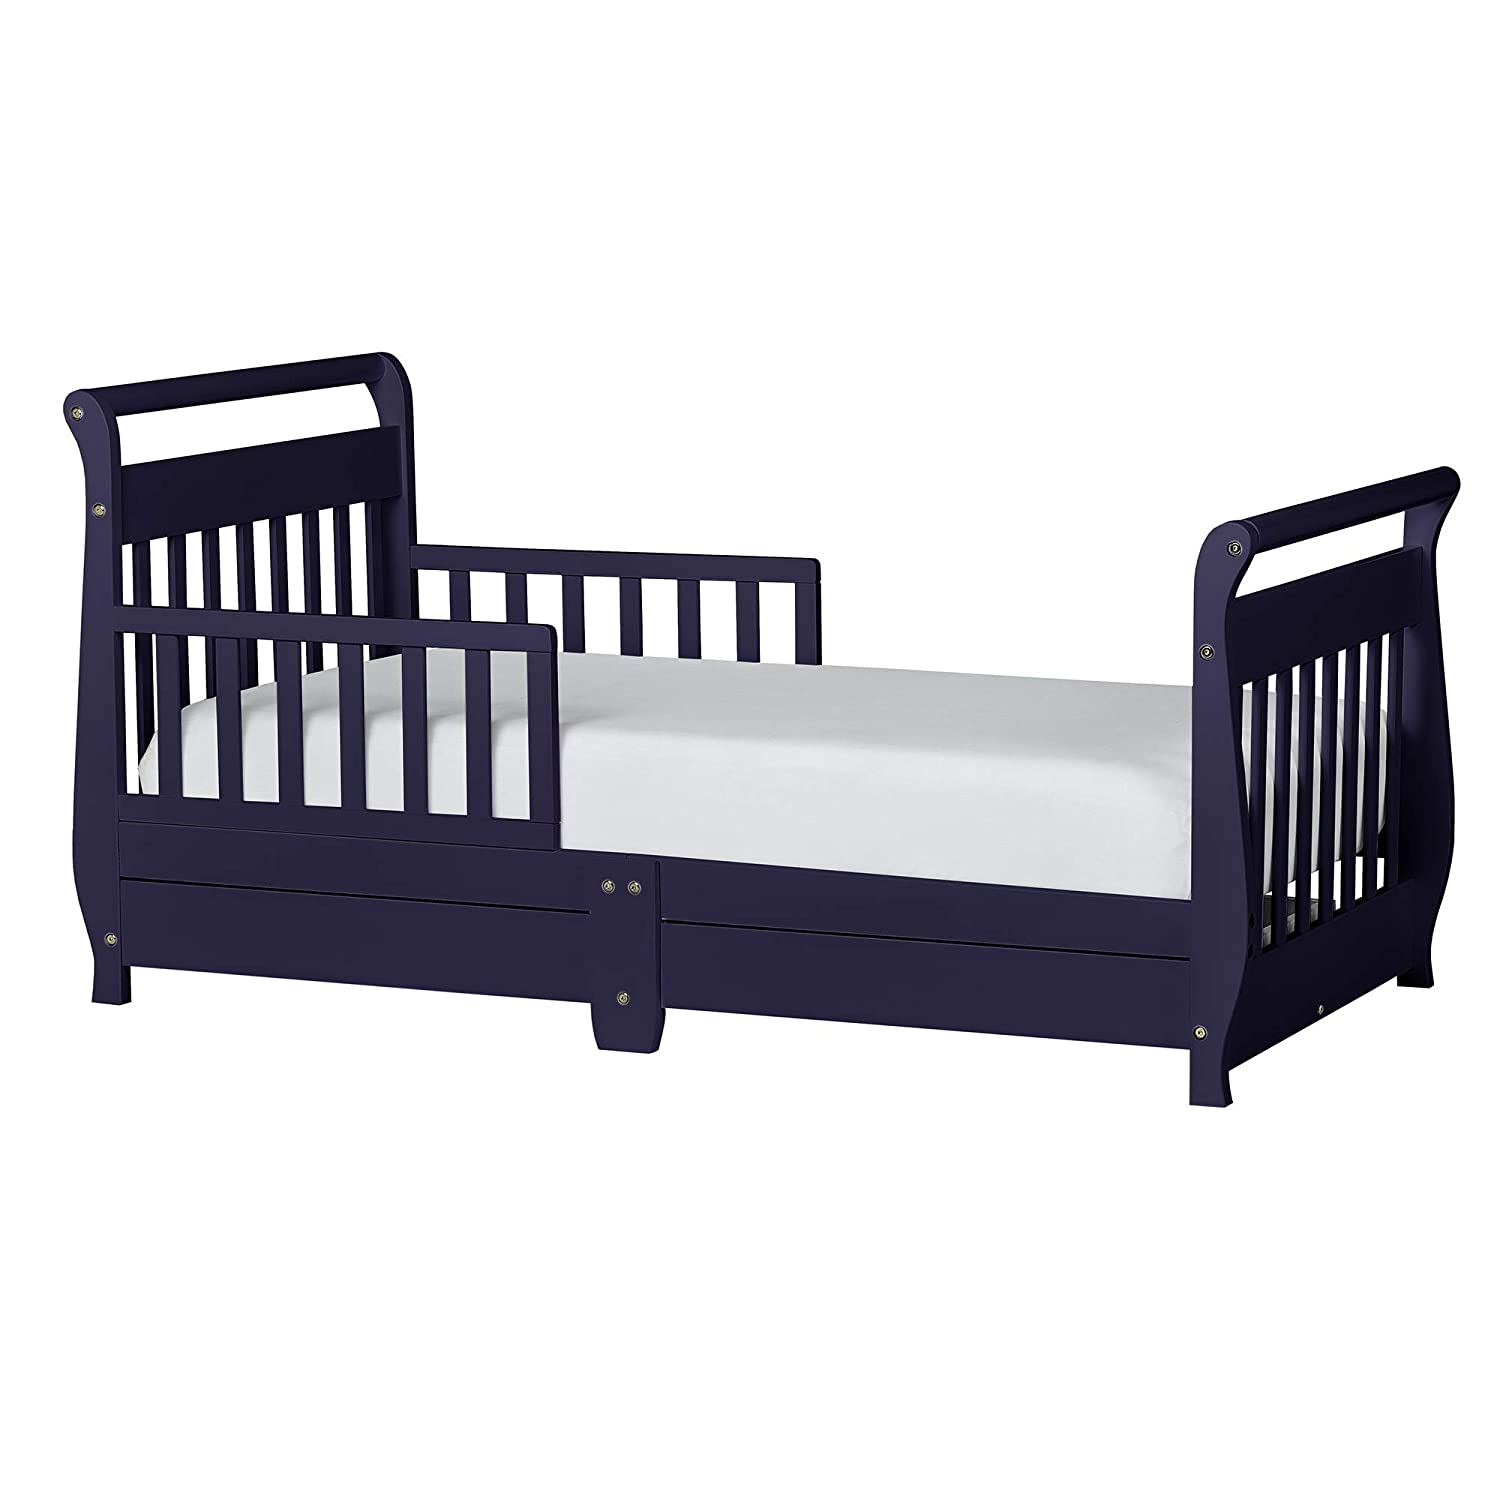 Amazoncom Dream On Me Toddler Bed With Storage Drawer Black Baby